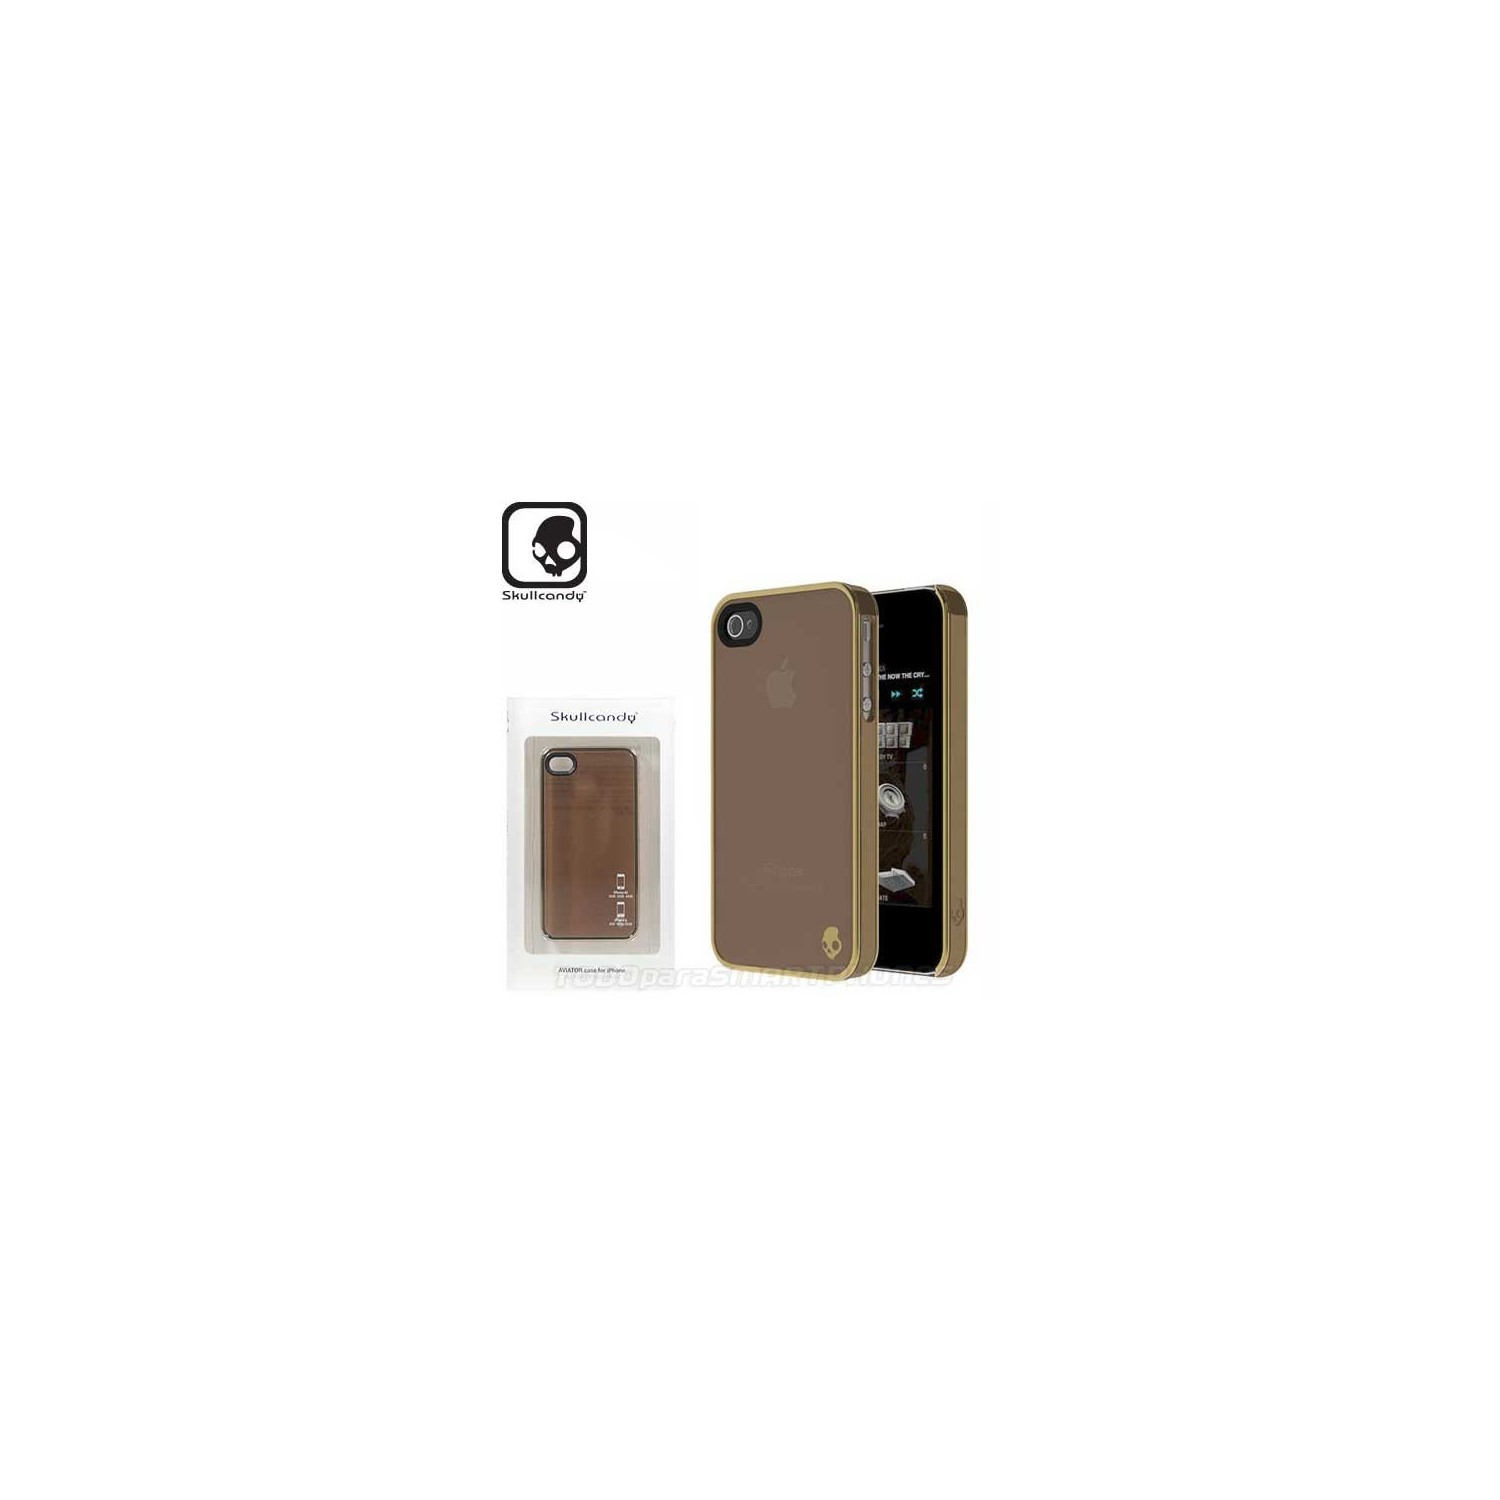 Funda SKULLCANDY iPhone 4 y 4s Aviator Cafe Gold